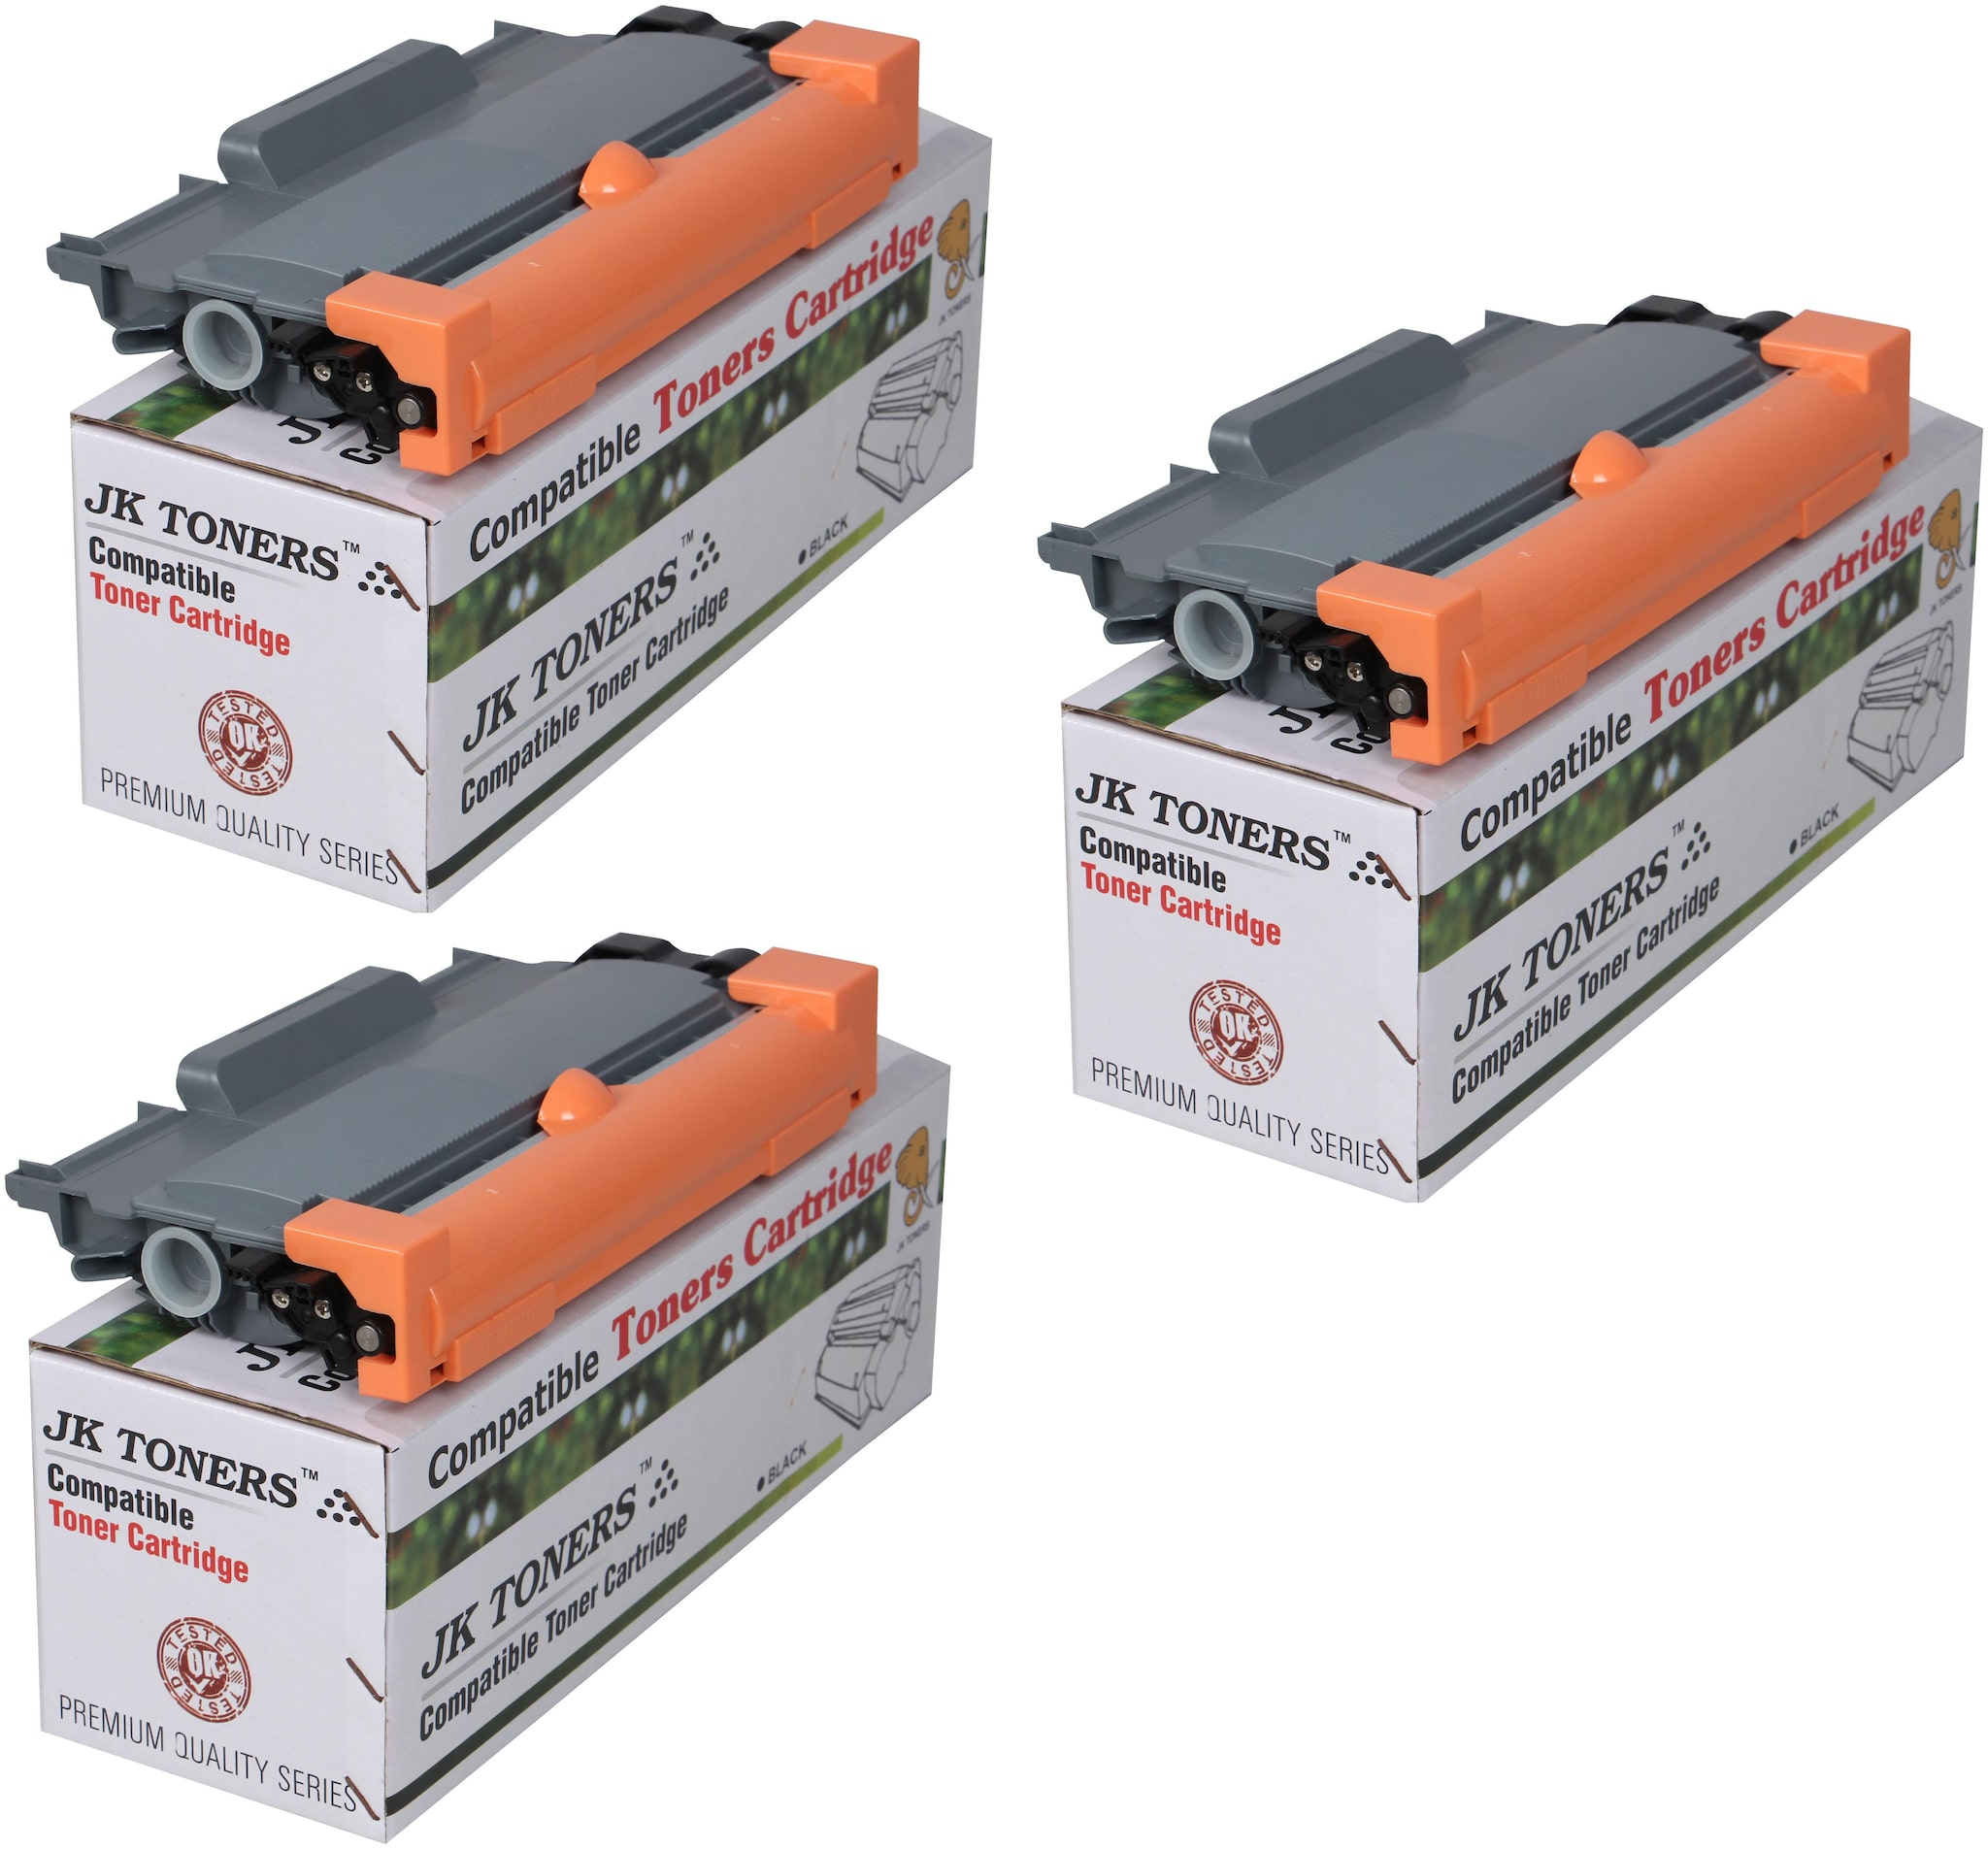 JK TONERS TN 2260/2280 Cartridge Compatible with Brther HL 2215/2235 / 2220/2225 / 2230/2240 / 2242D / 2250/2260 / 2270DW / 2275DW / MFC7360 / 7362N /